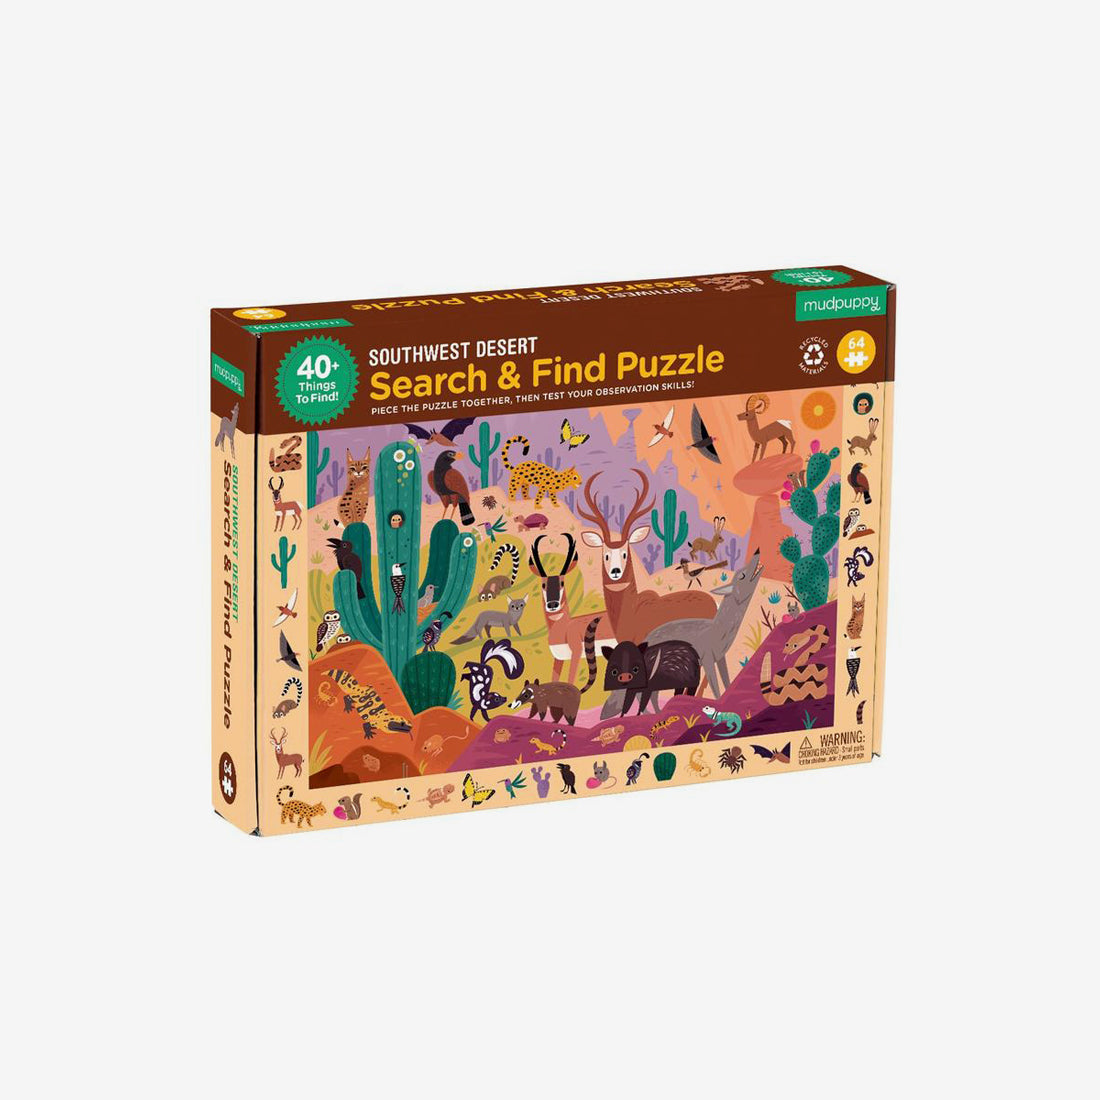 64-Piece Search & Find Puzzle - Southwest Desert